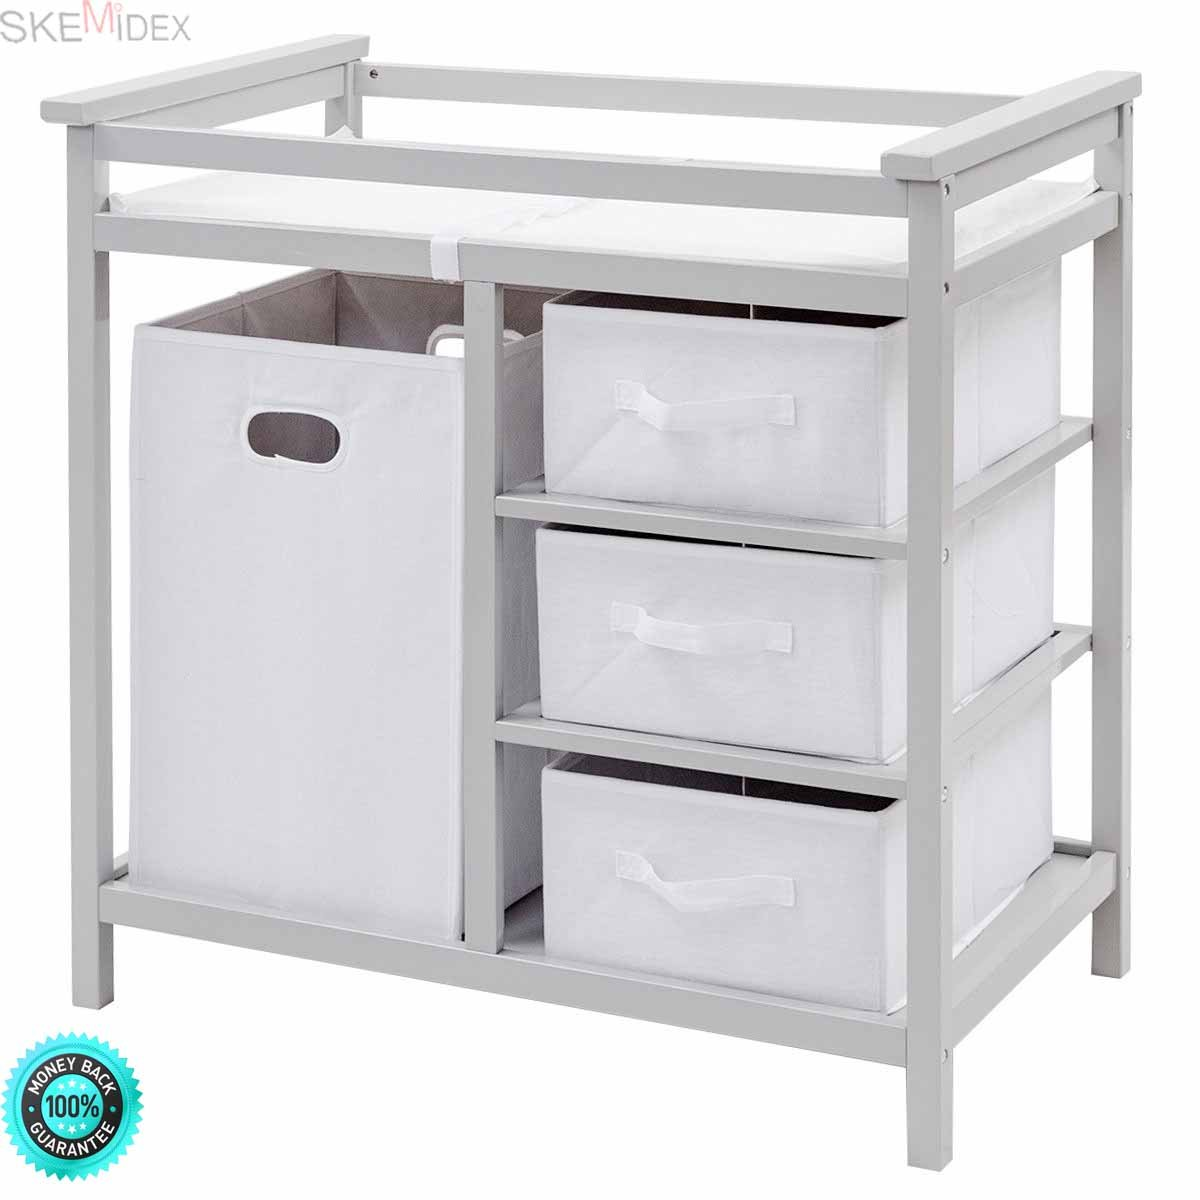 SKEMiDEX---Gray Infant Baby Changing Table w/3 Basket Hamper Diaper Storage Nursery New This Baby Changing Table keeps everything tidy and concealed for a clean look in the nursery